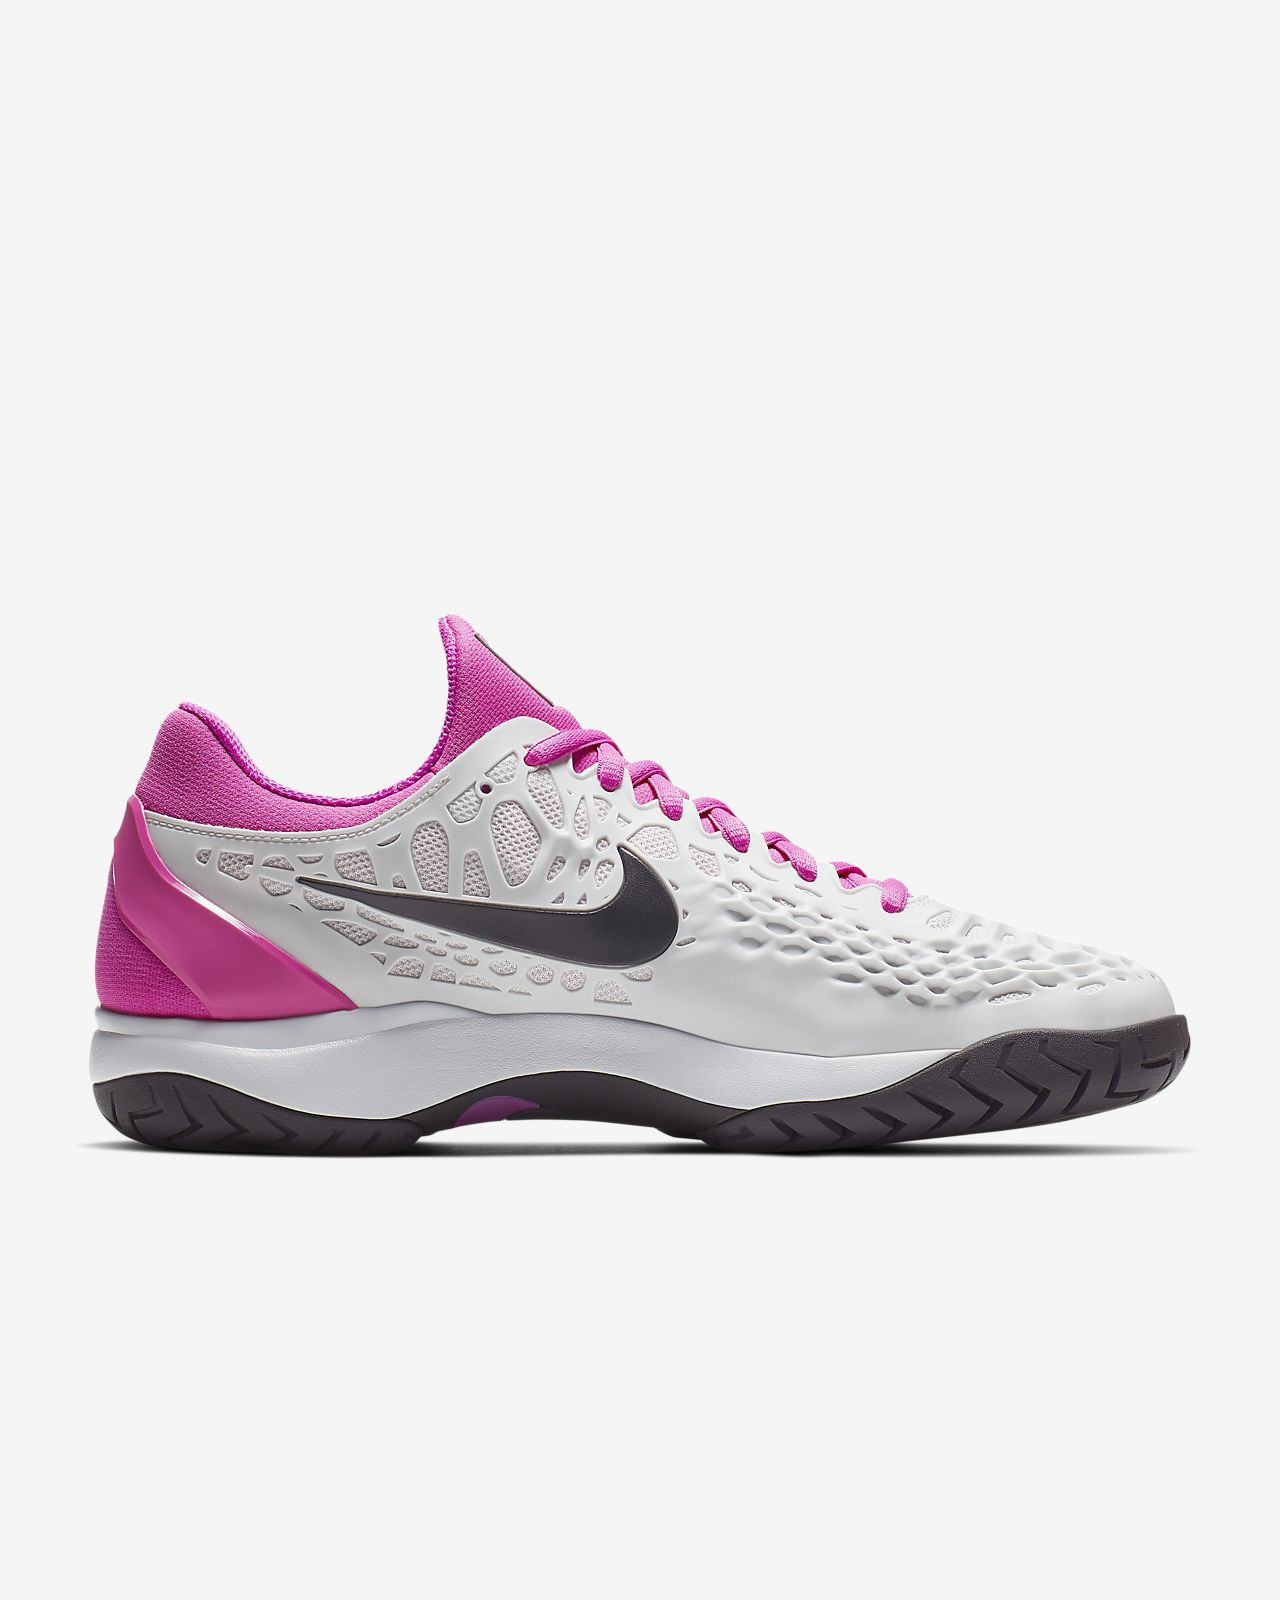 low priced 0e8f1 90a55 ... NikeCourt Zoom Cage 3 Mens Hard Court Tennis Shoe